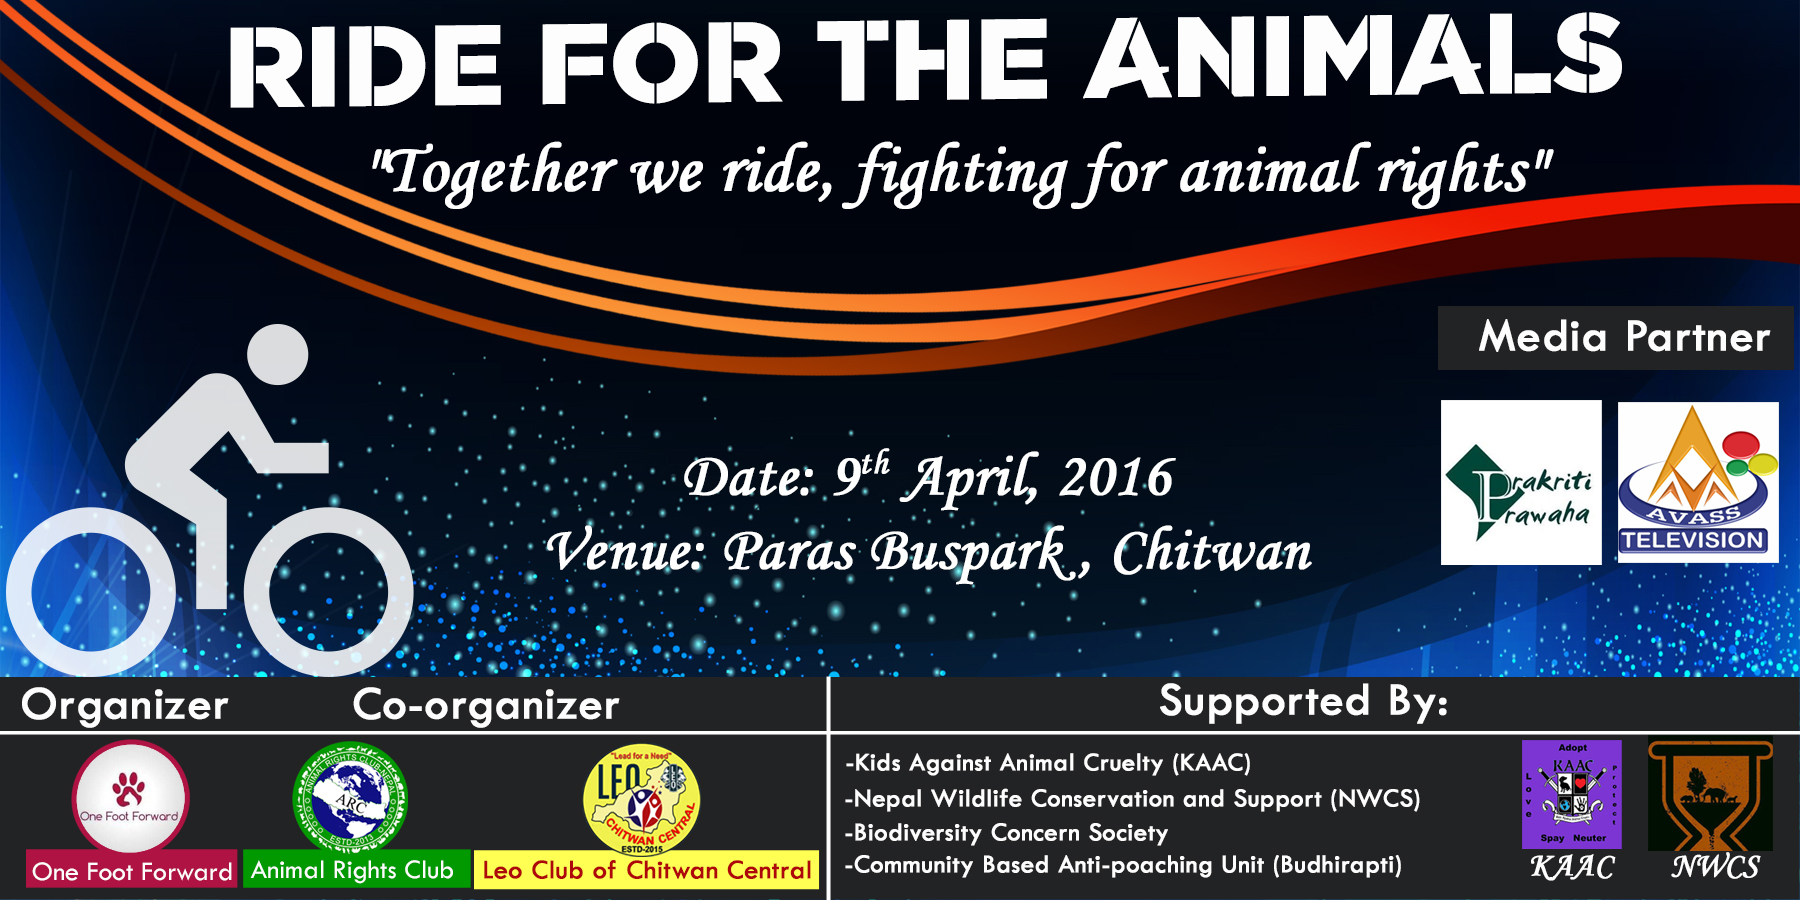 youths for wildlife conservation ride for the animal e gen ambassador rahul acharya